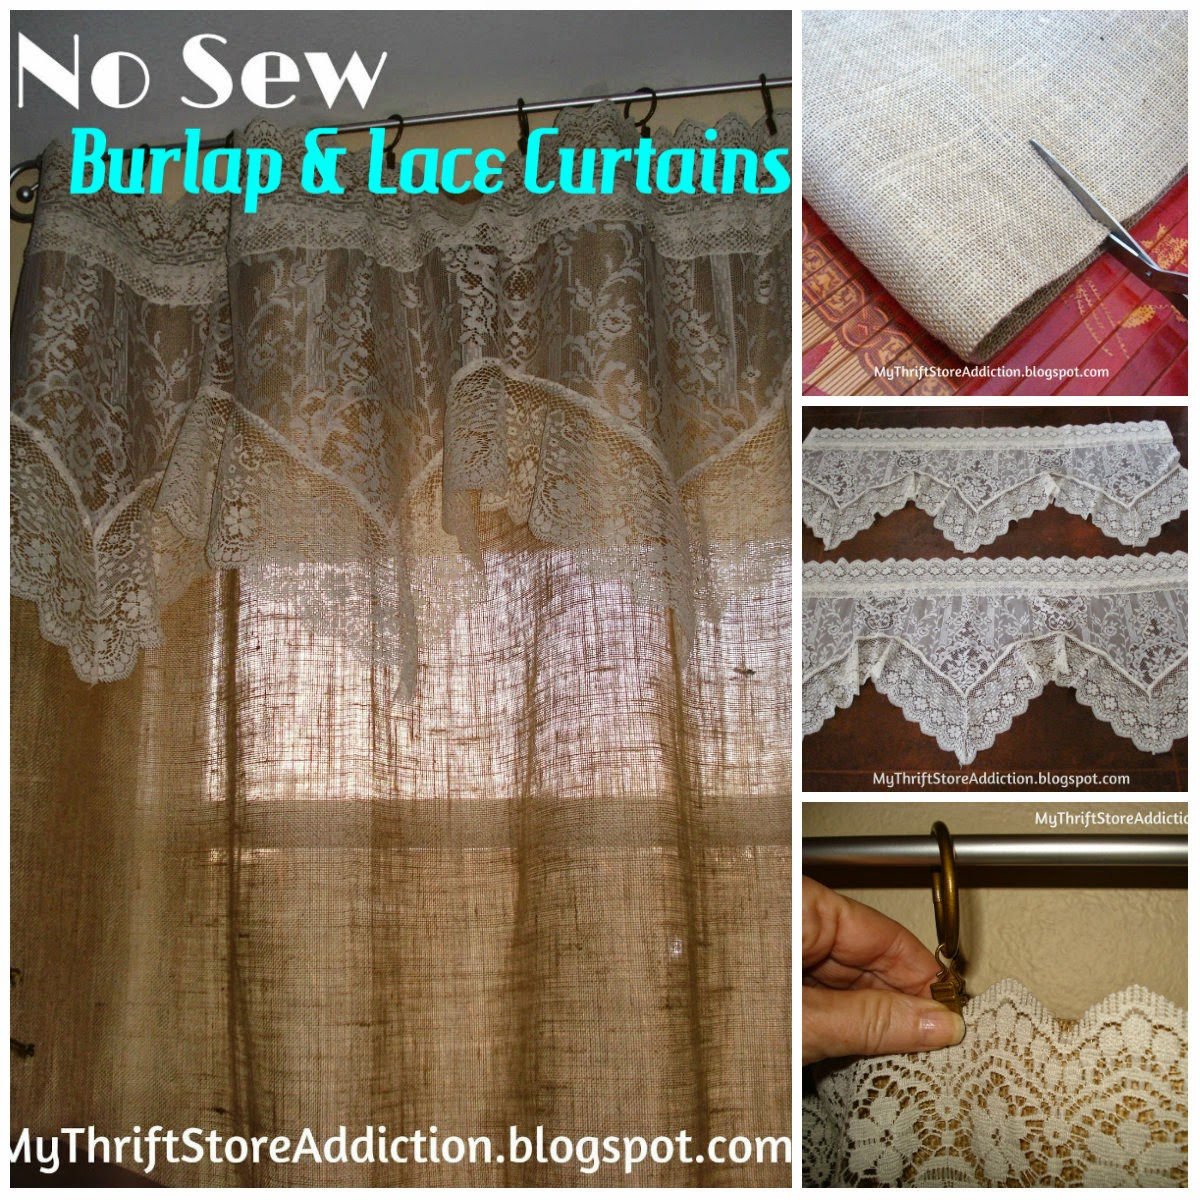 No Sew Burlap And Lace Curtains Cute Diy Projects